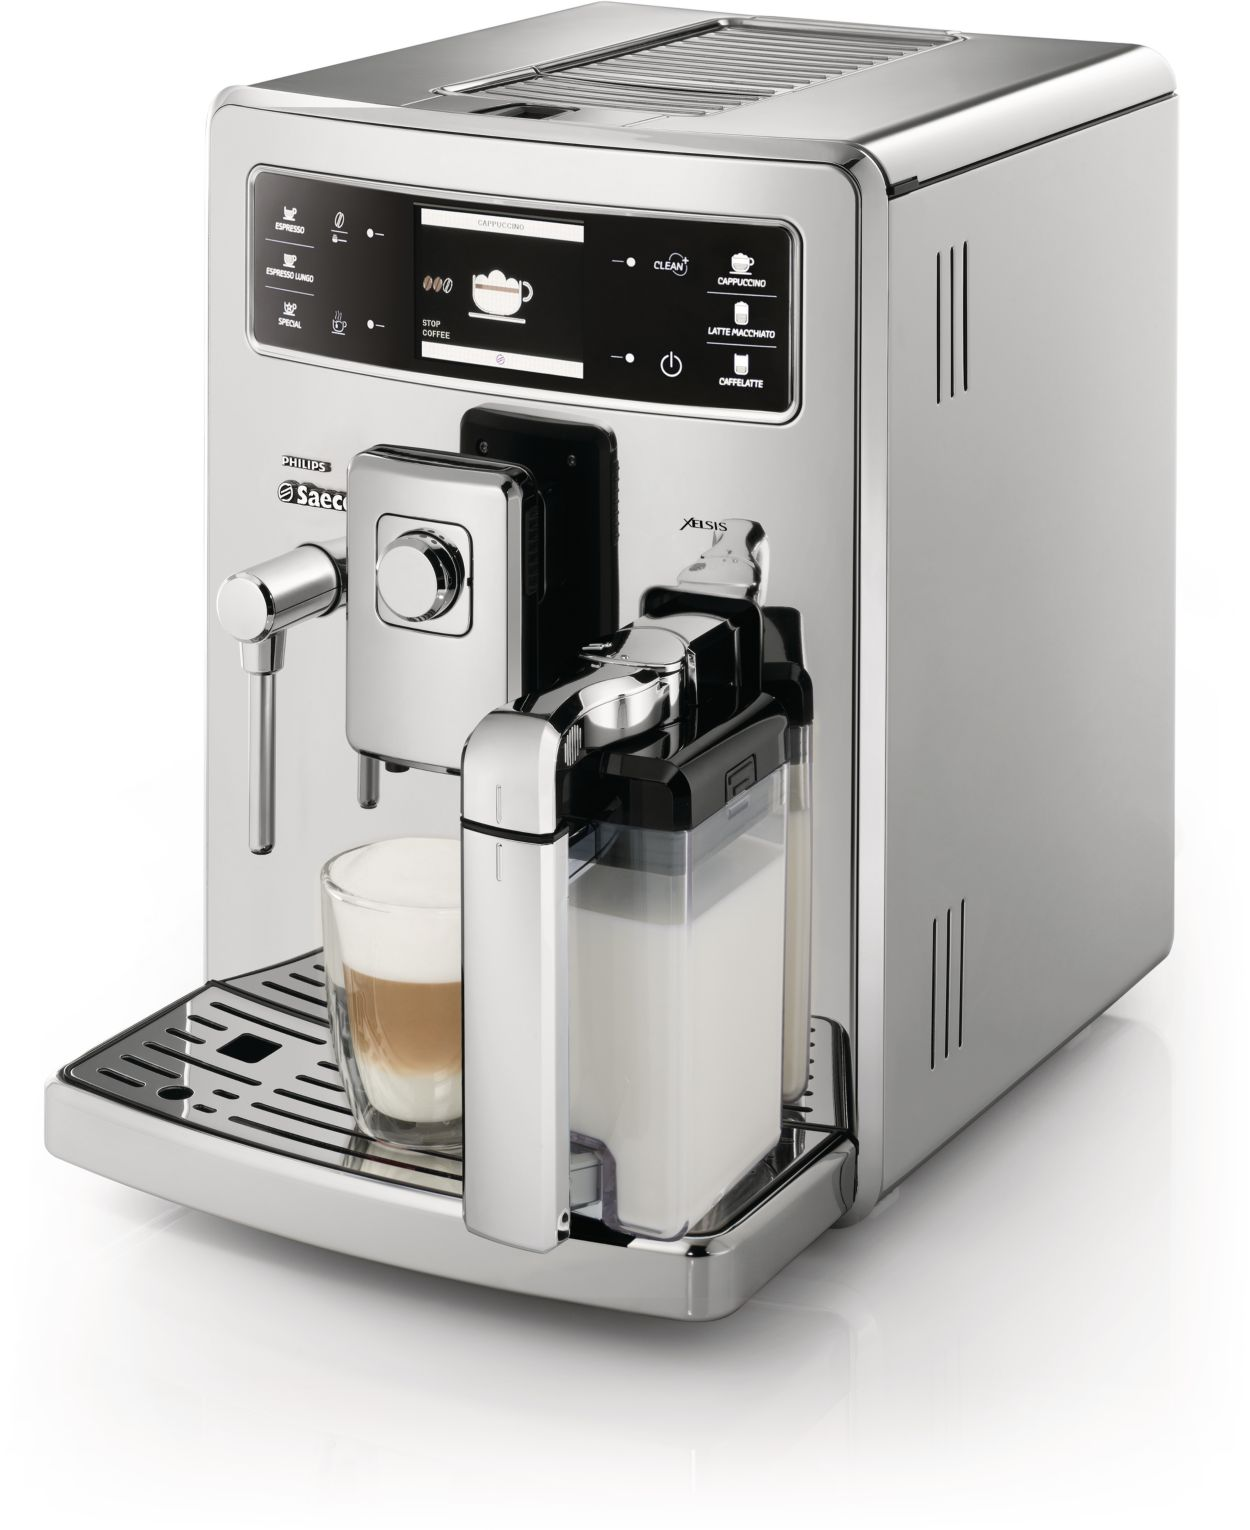 Philips Coffee Maker Replacement Parts : Xelsis Super-automatic espresso machine HD8946/01 Saeco